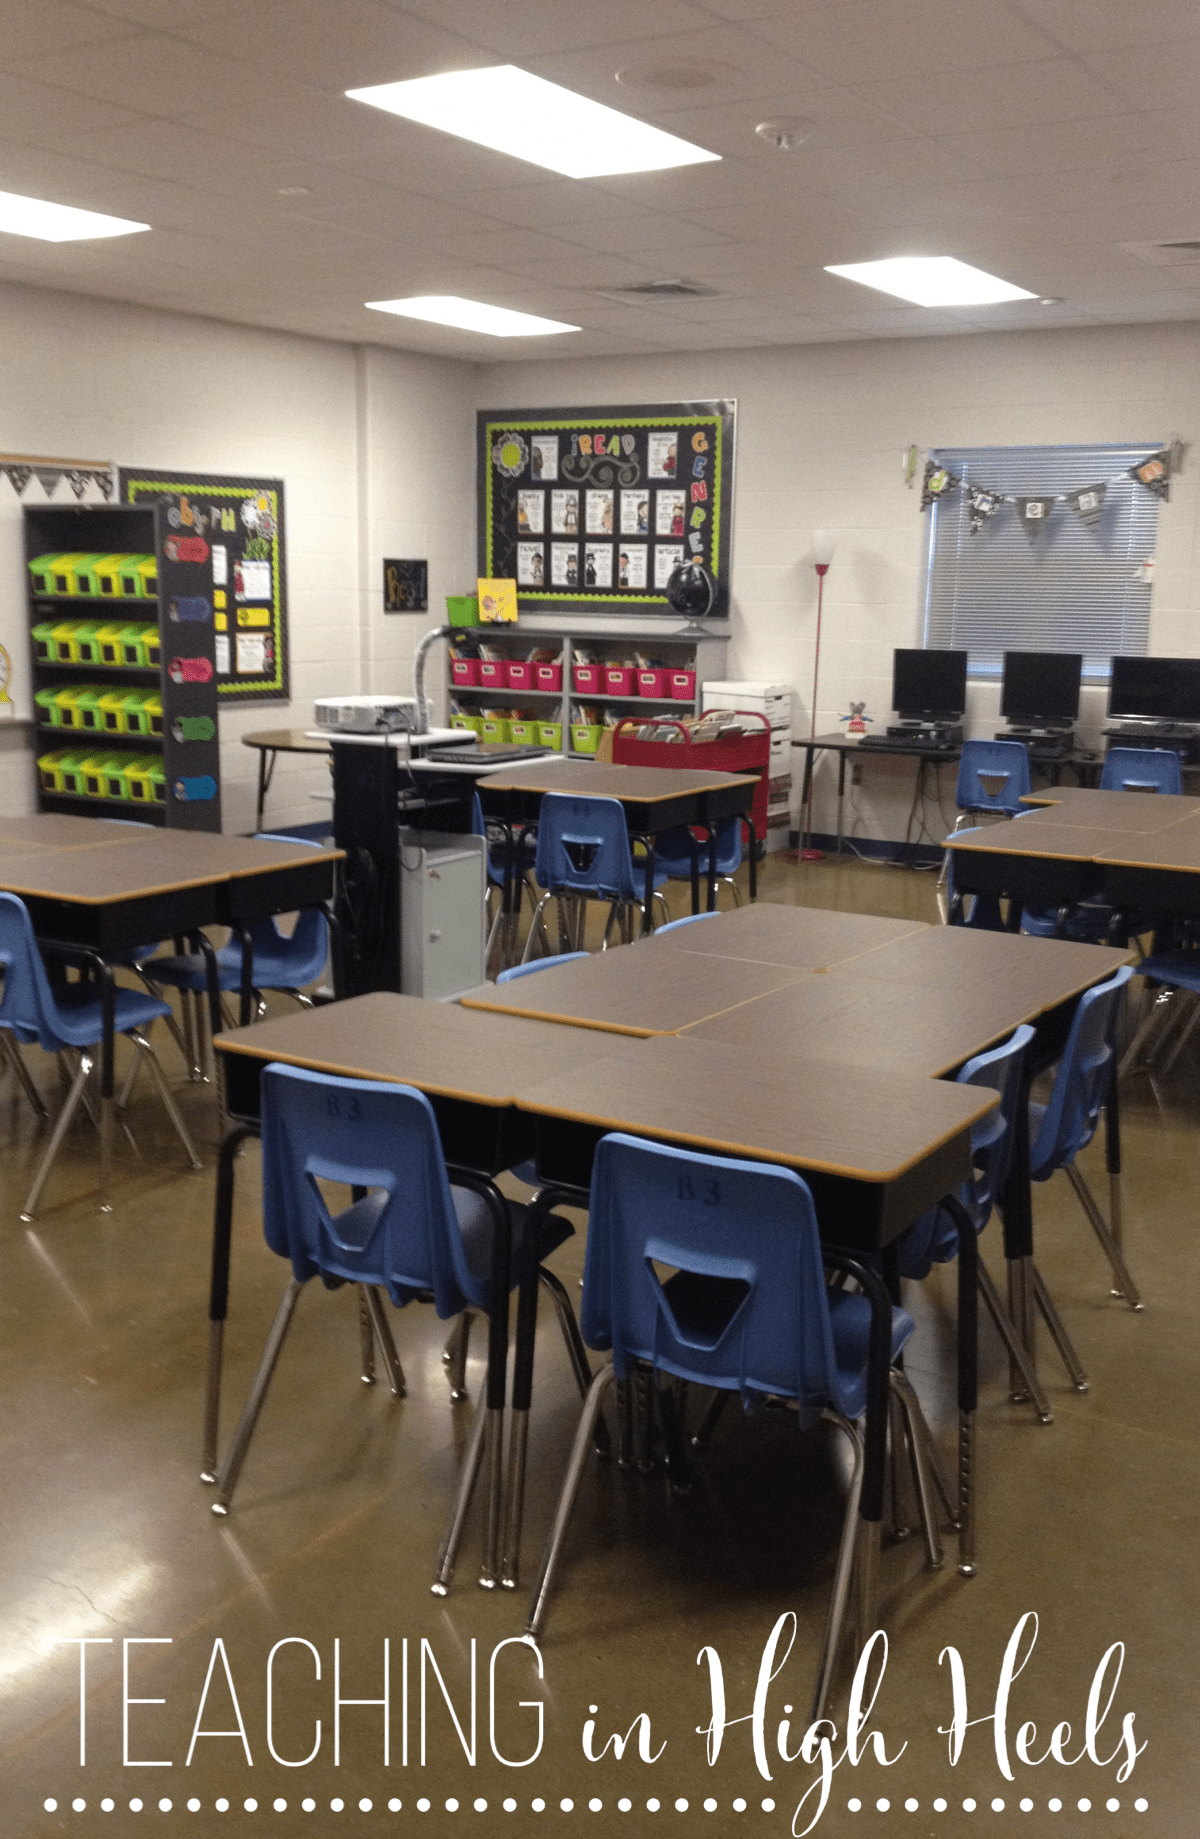 Horseshoe Classroom Design ~ Tips to setting a welcoming learning environment